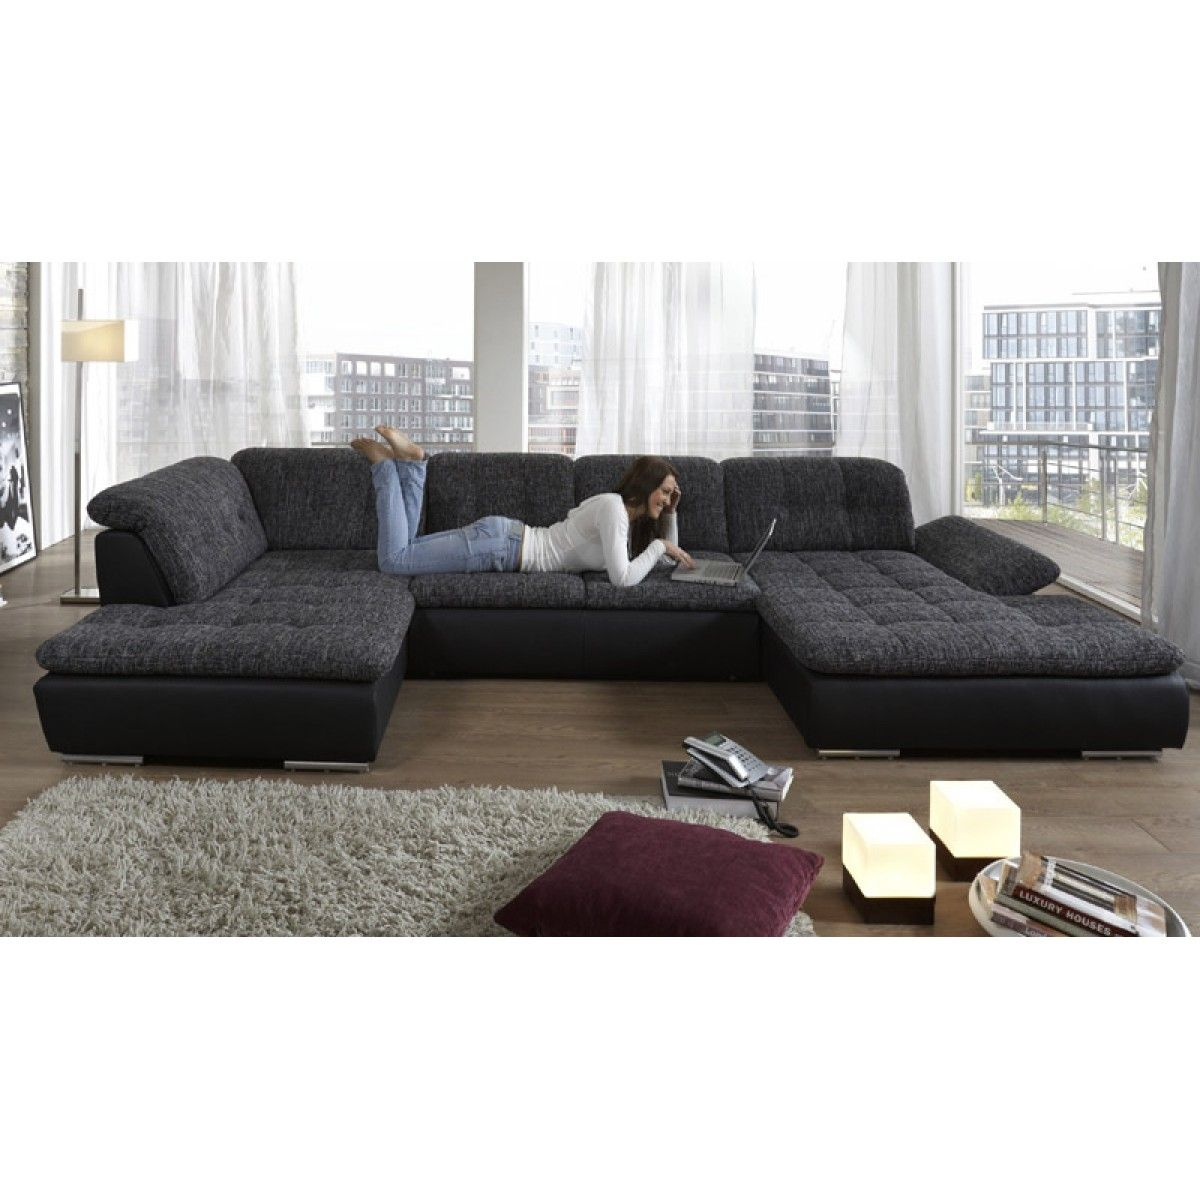 Xxl Couch Dream Couch Wohnlandschaft Sofa Linos I Matratzen